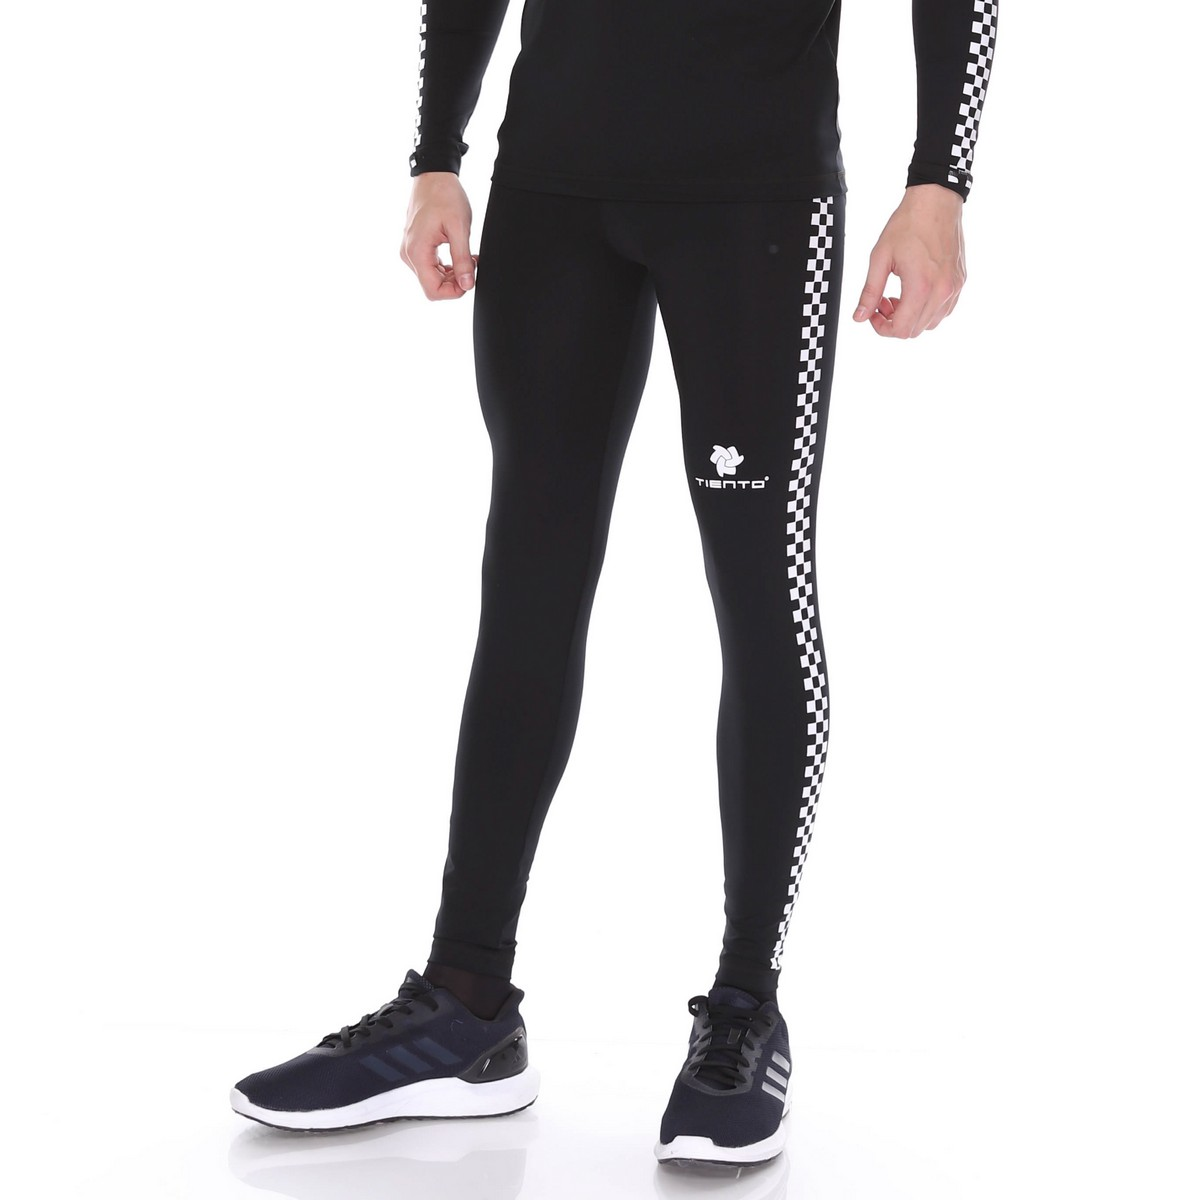 Celana Legging Sport Long Pants Black Retro Race Men Tiento